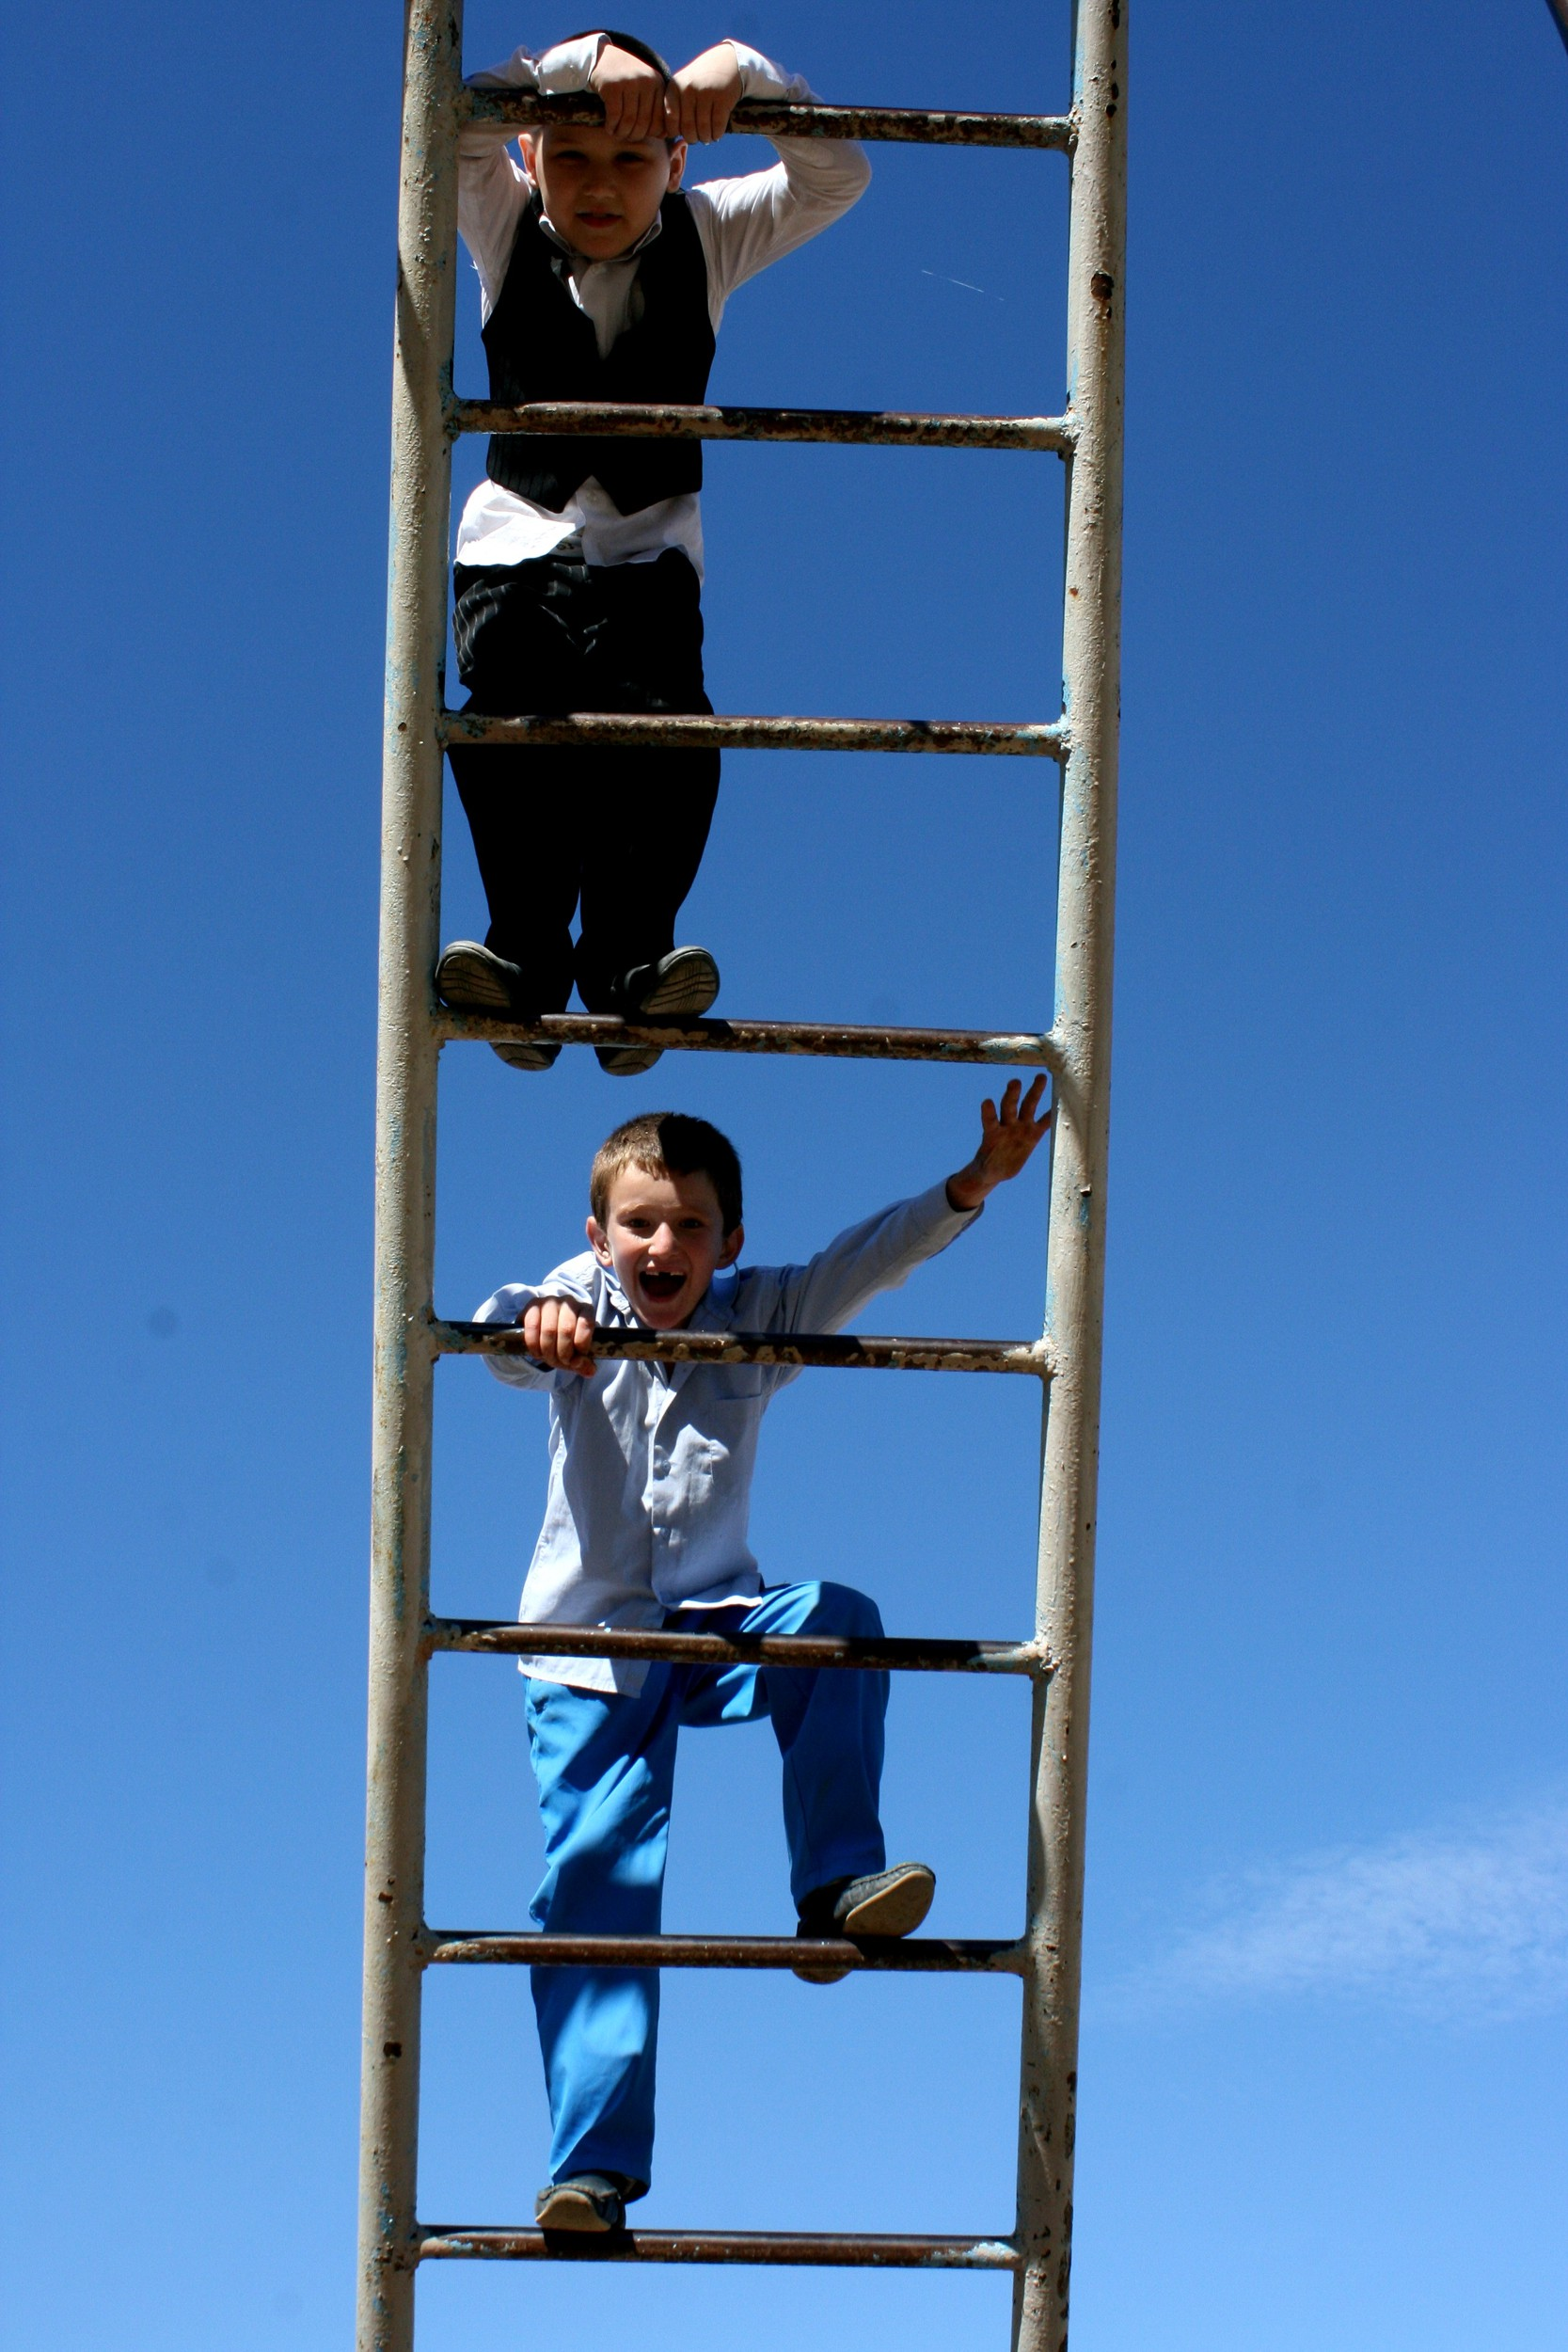 Two schoolboys climbing up the ladder on the school's playground. Astrakhan, 2nd October.